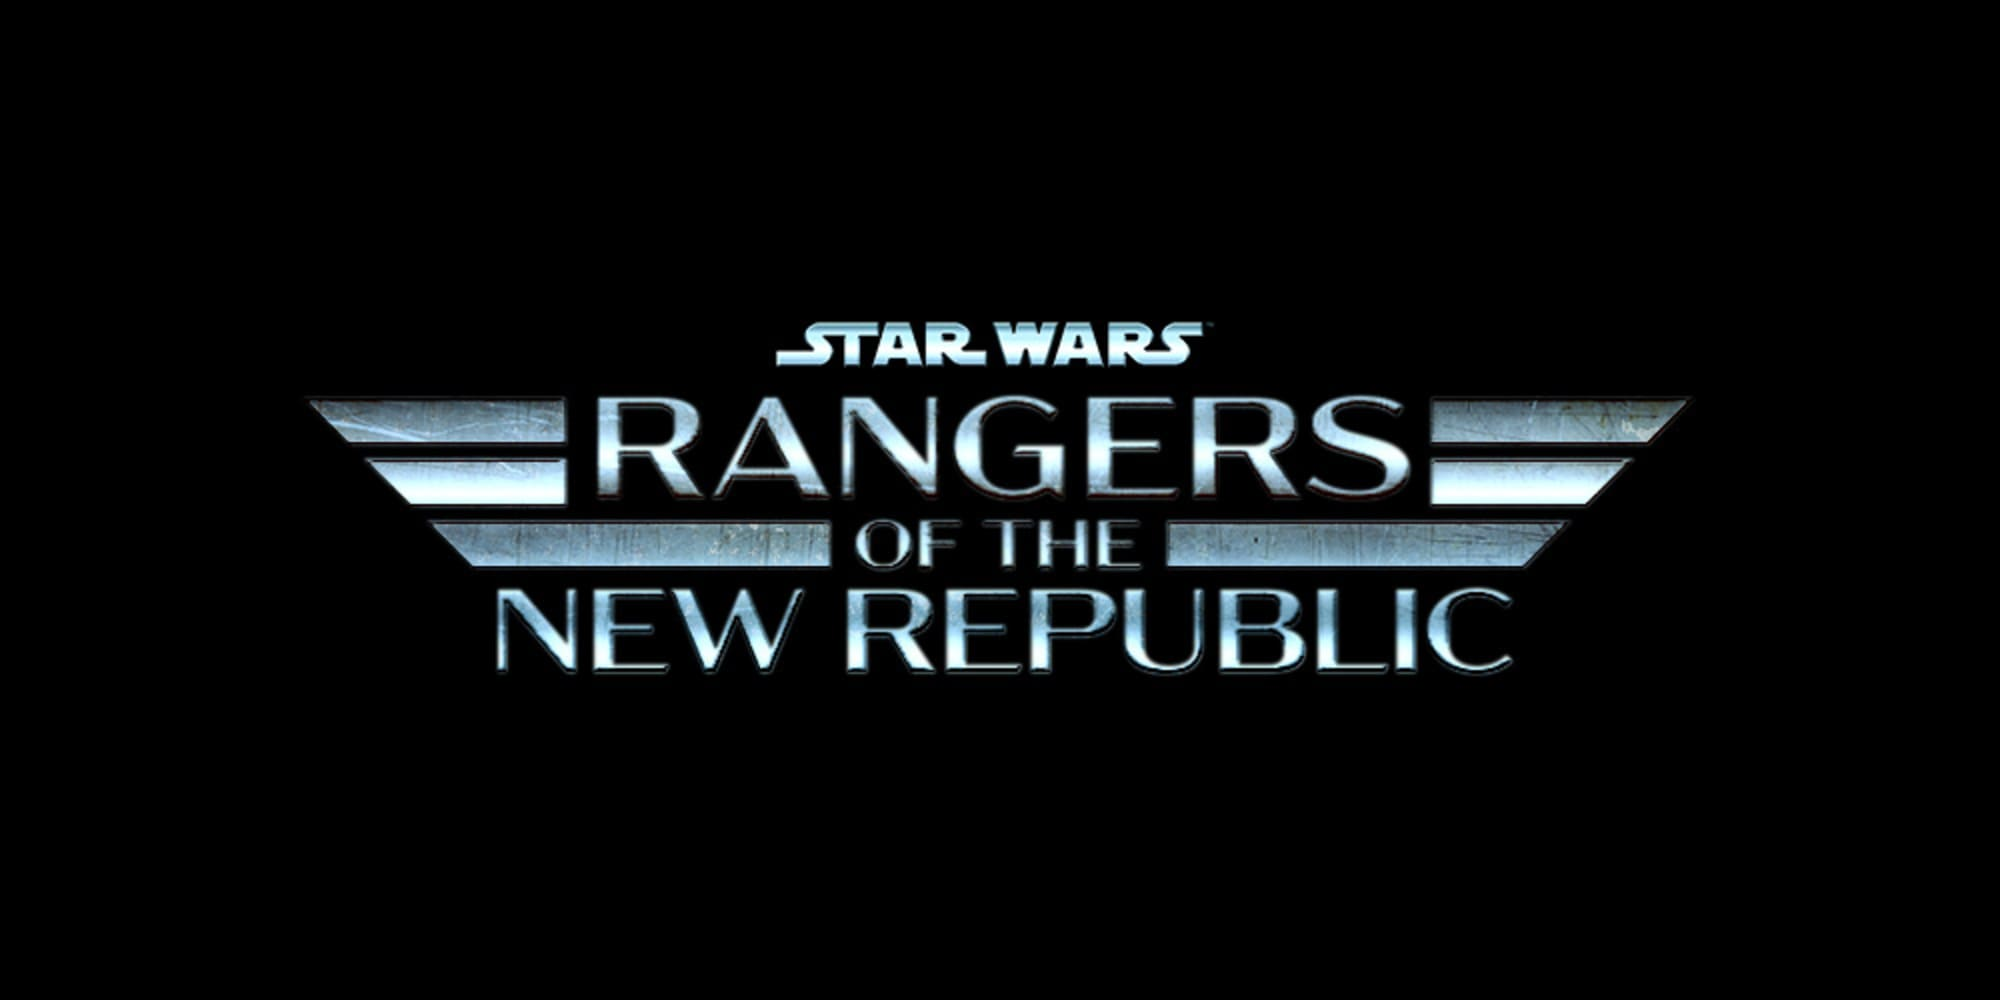 Rangers Of The New Republic: Gina Carano Fired, Will The Show Still Happen?